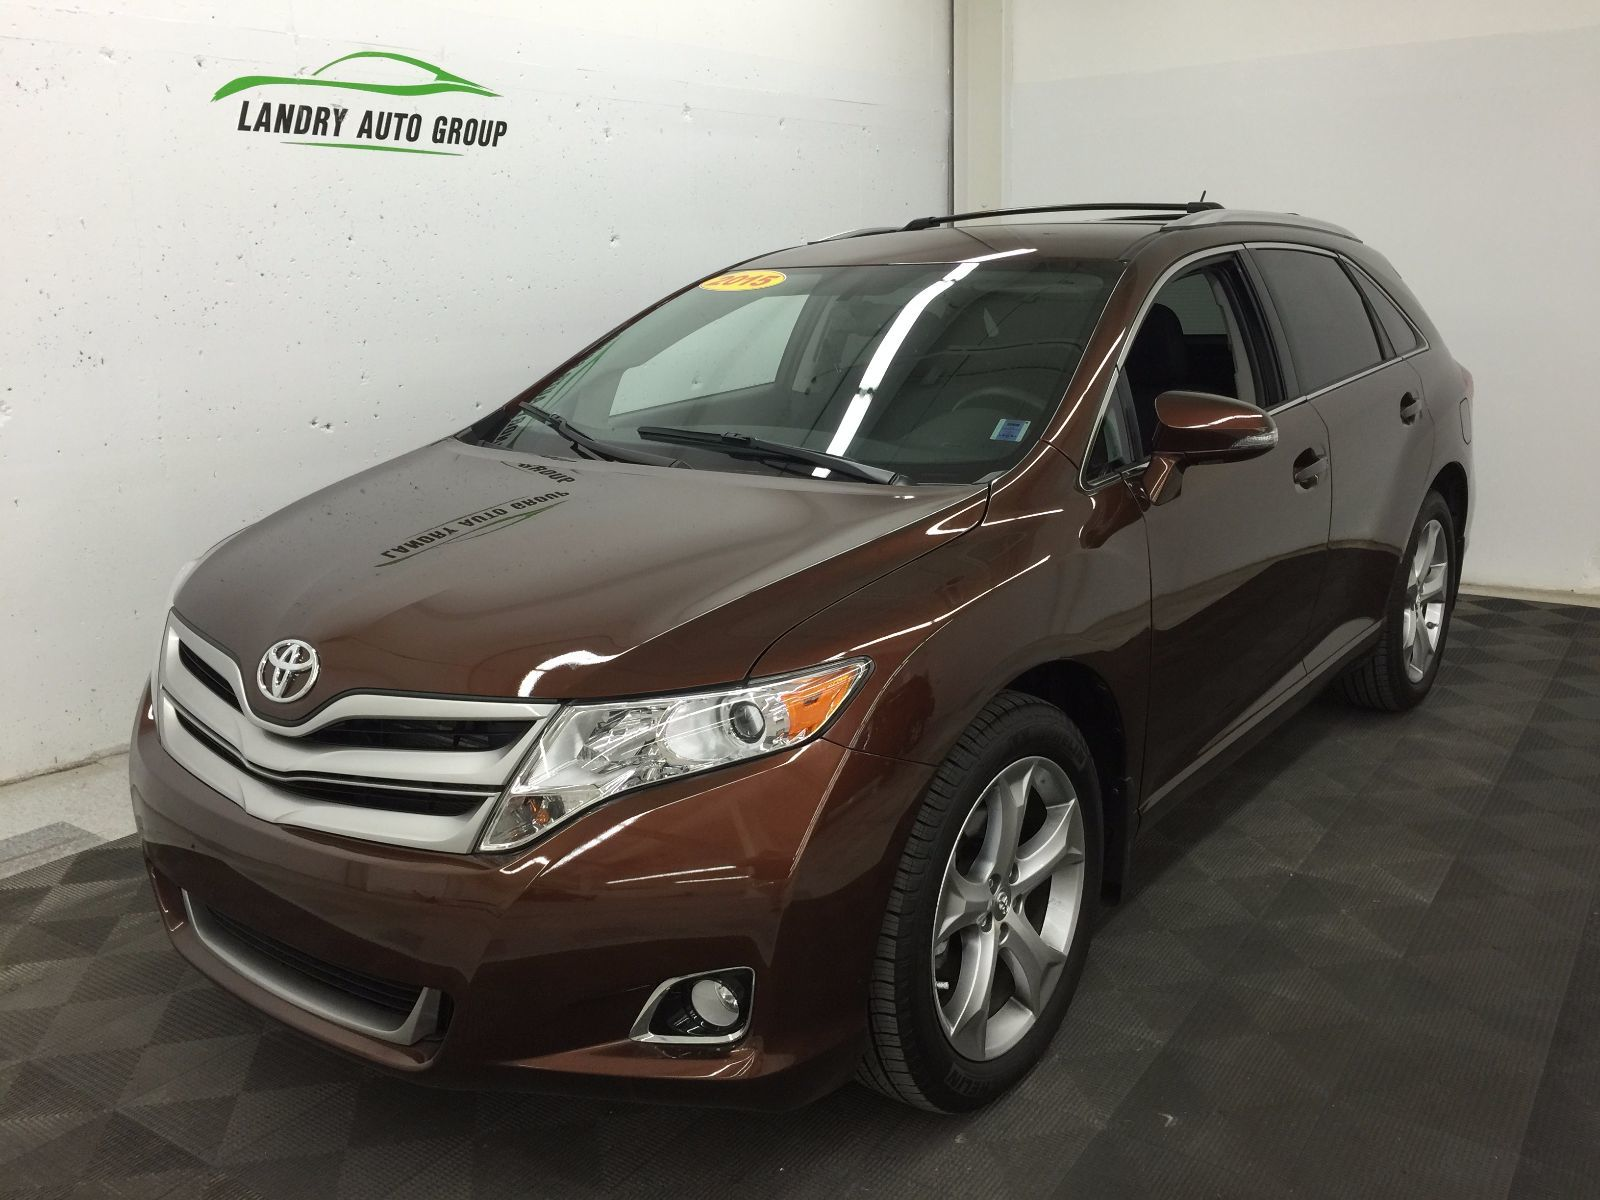 sale did discussion me email questions give pic my yet used please to conformation not hi toyota cars your i post venza for carugus car but on try